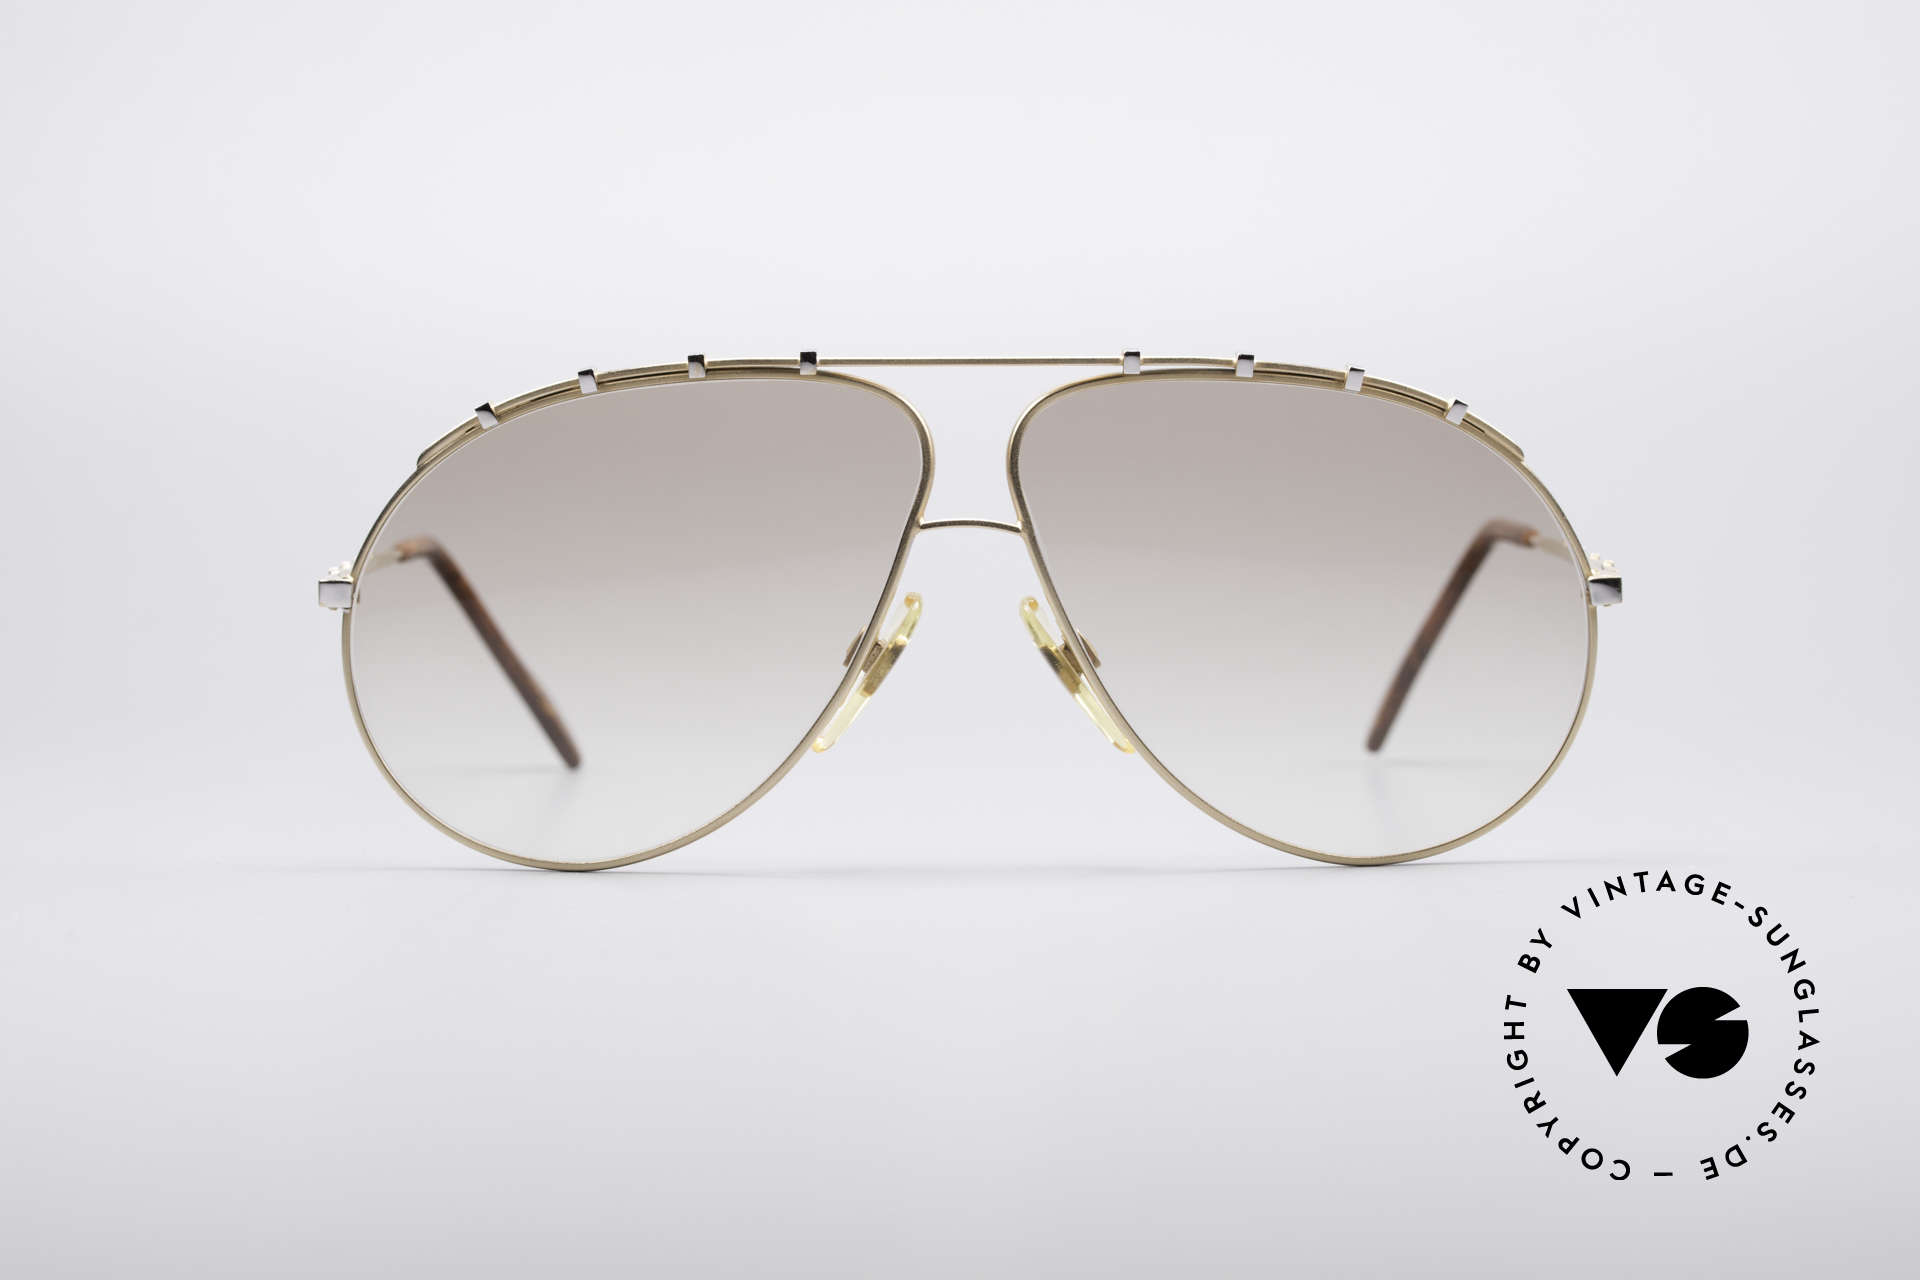 Zollitsch Marquise Rare Vintage Shades, precious, large metal frame for men (140mm width), Made for Men